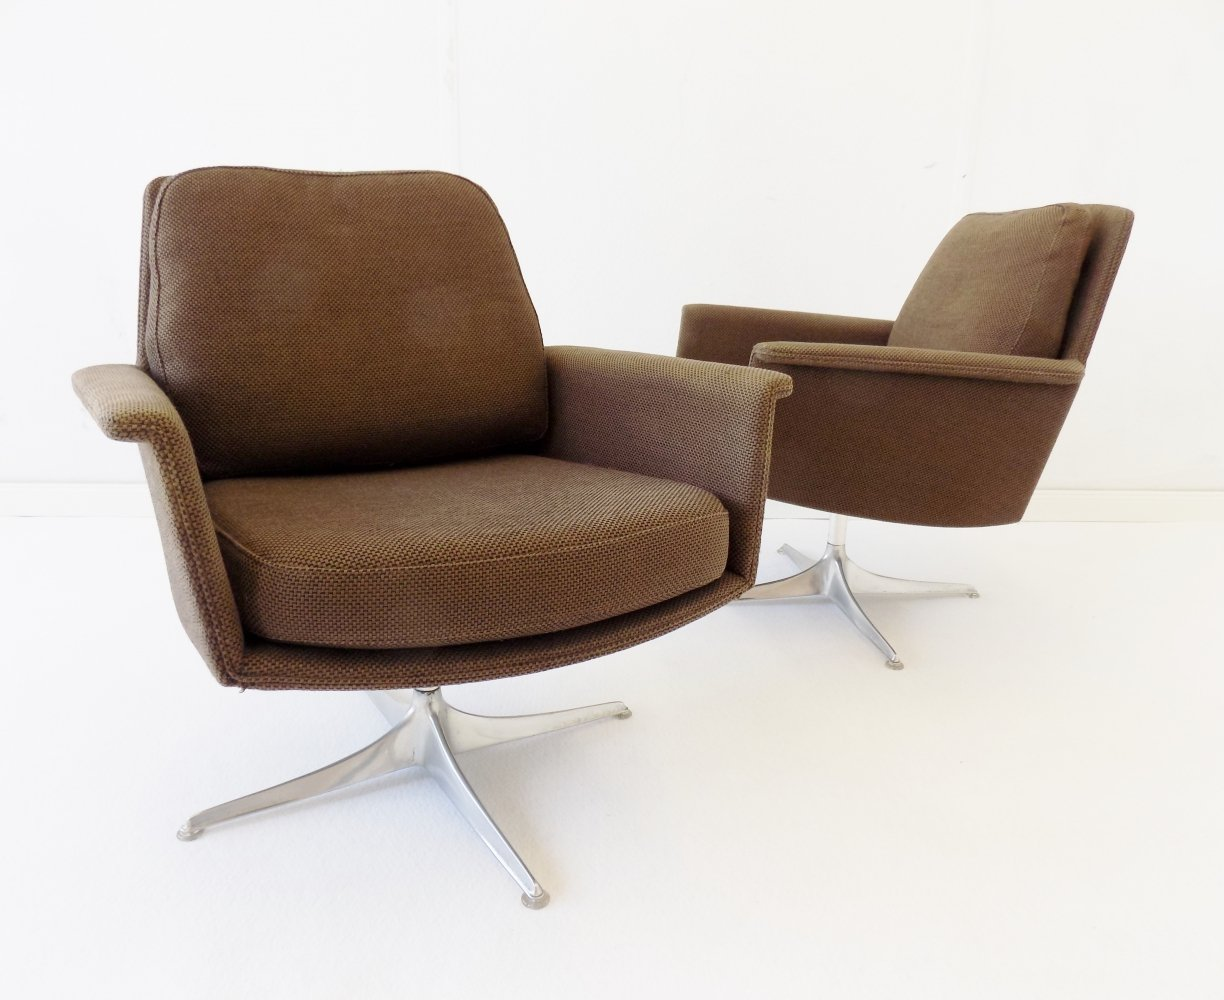 Cor Sedia set of 2 brown lounge chairs by Horst Brüning, 1960s